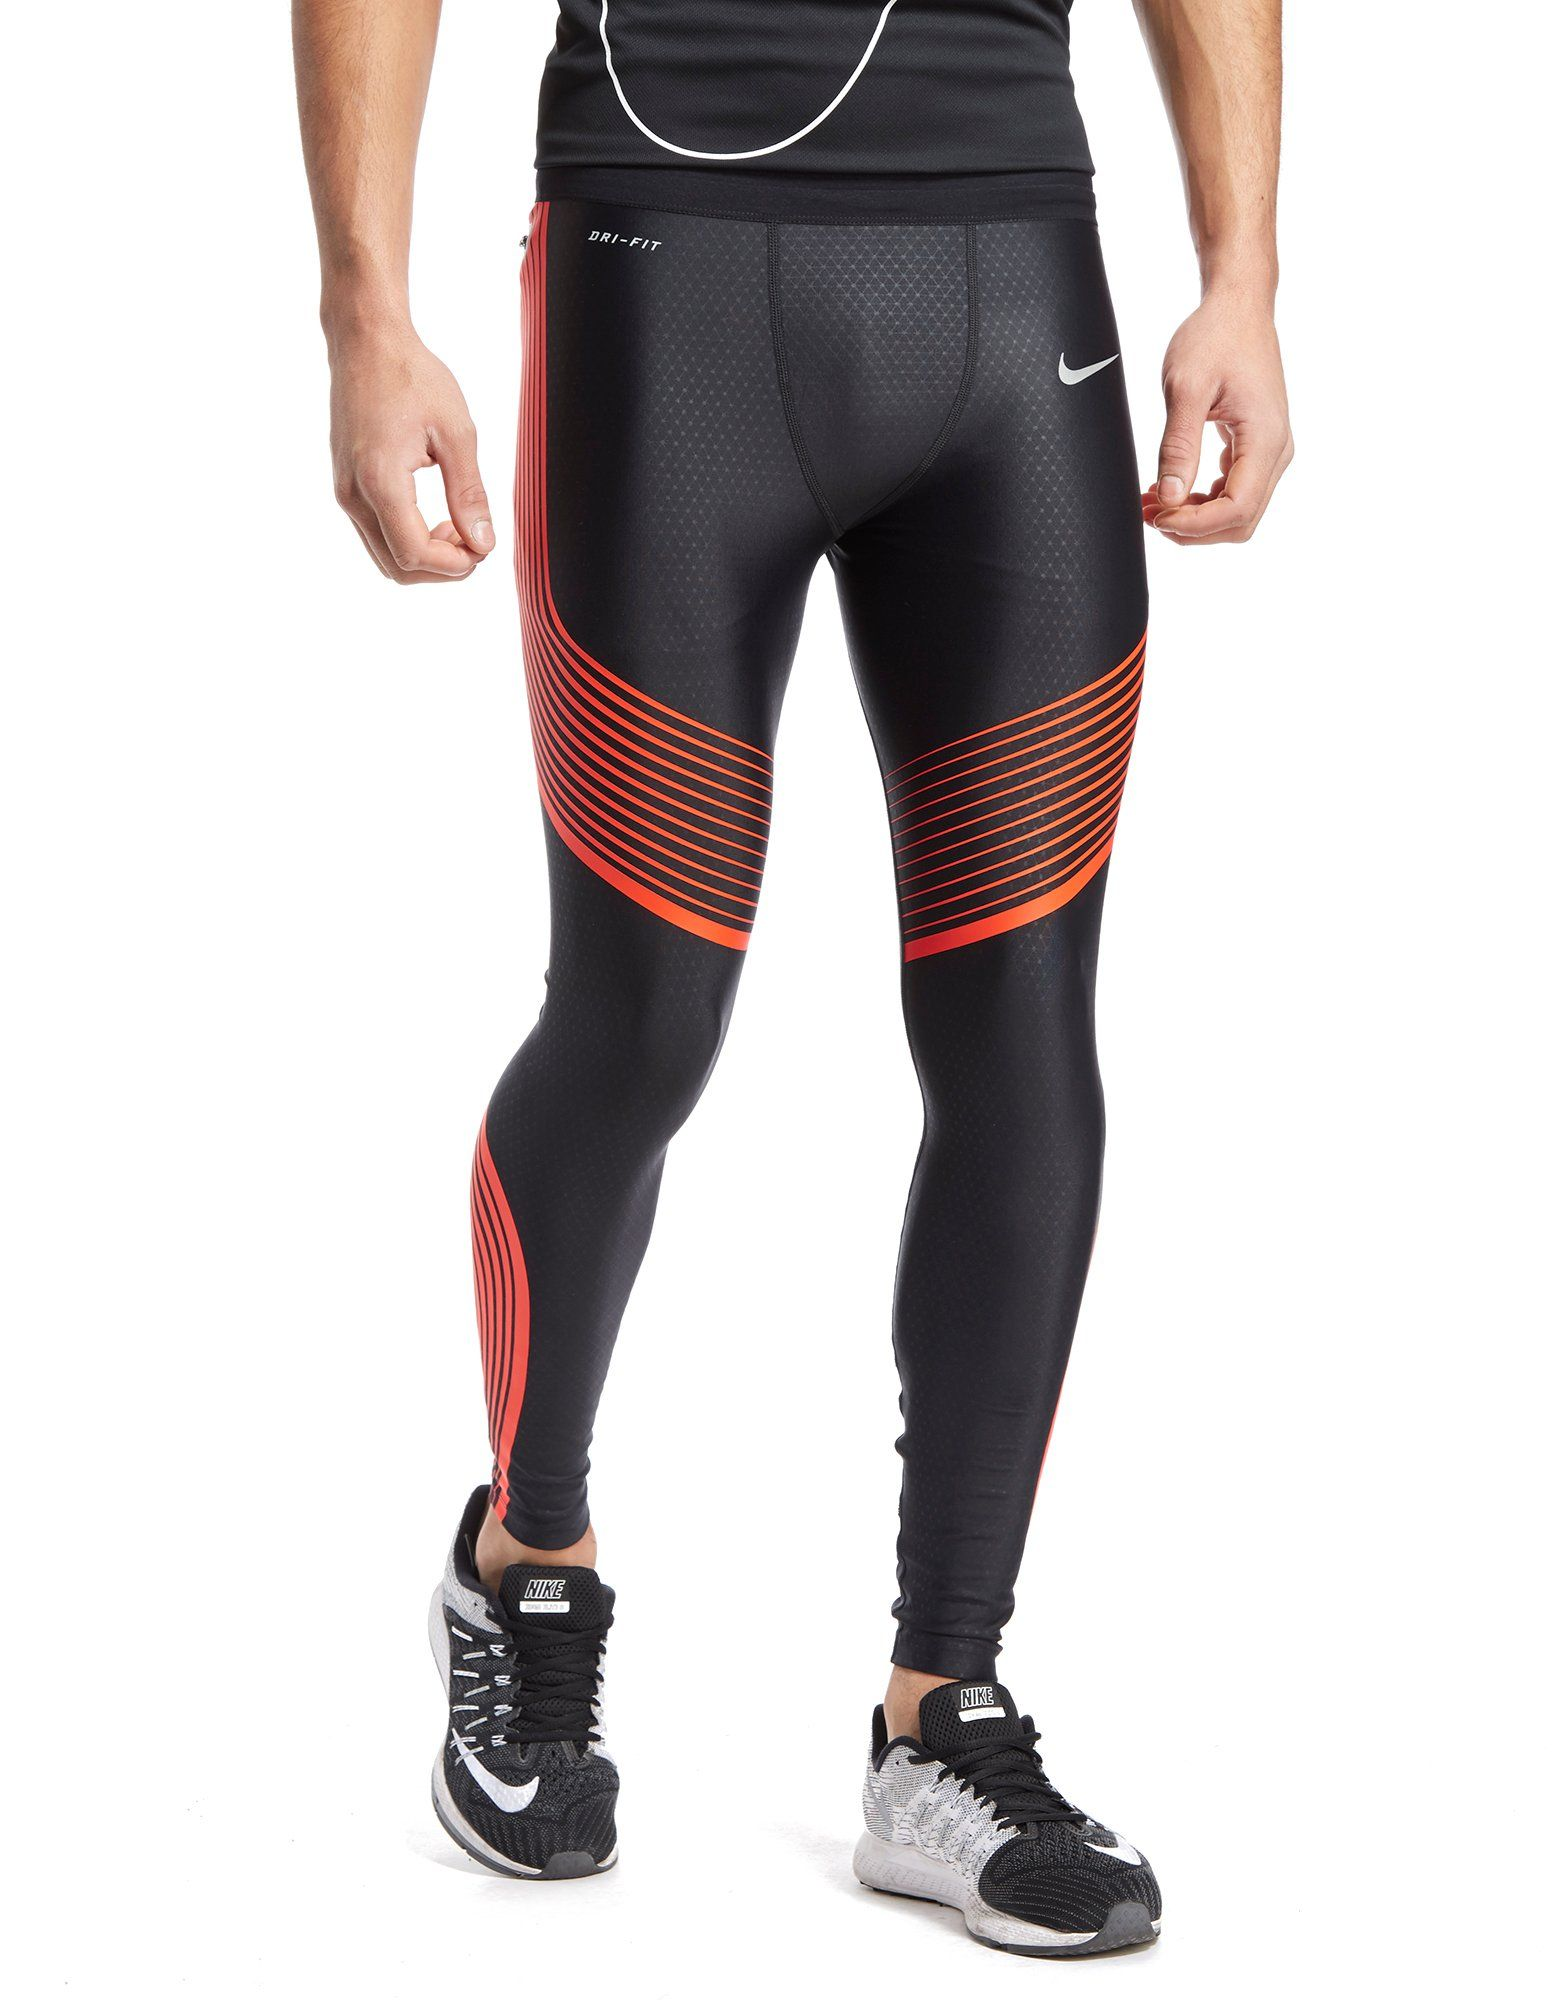 nike power speed running tights jd sports. Black Bedroom Furniture Sets. Home Design Ideas